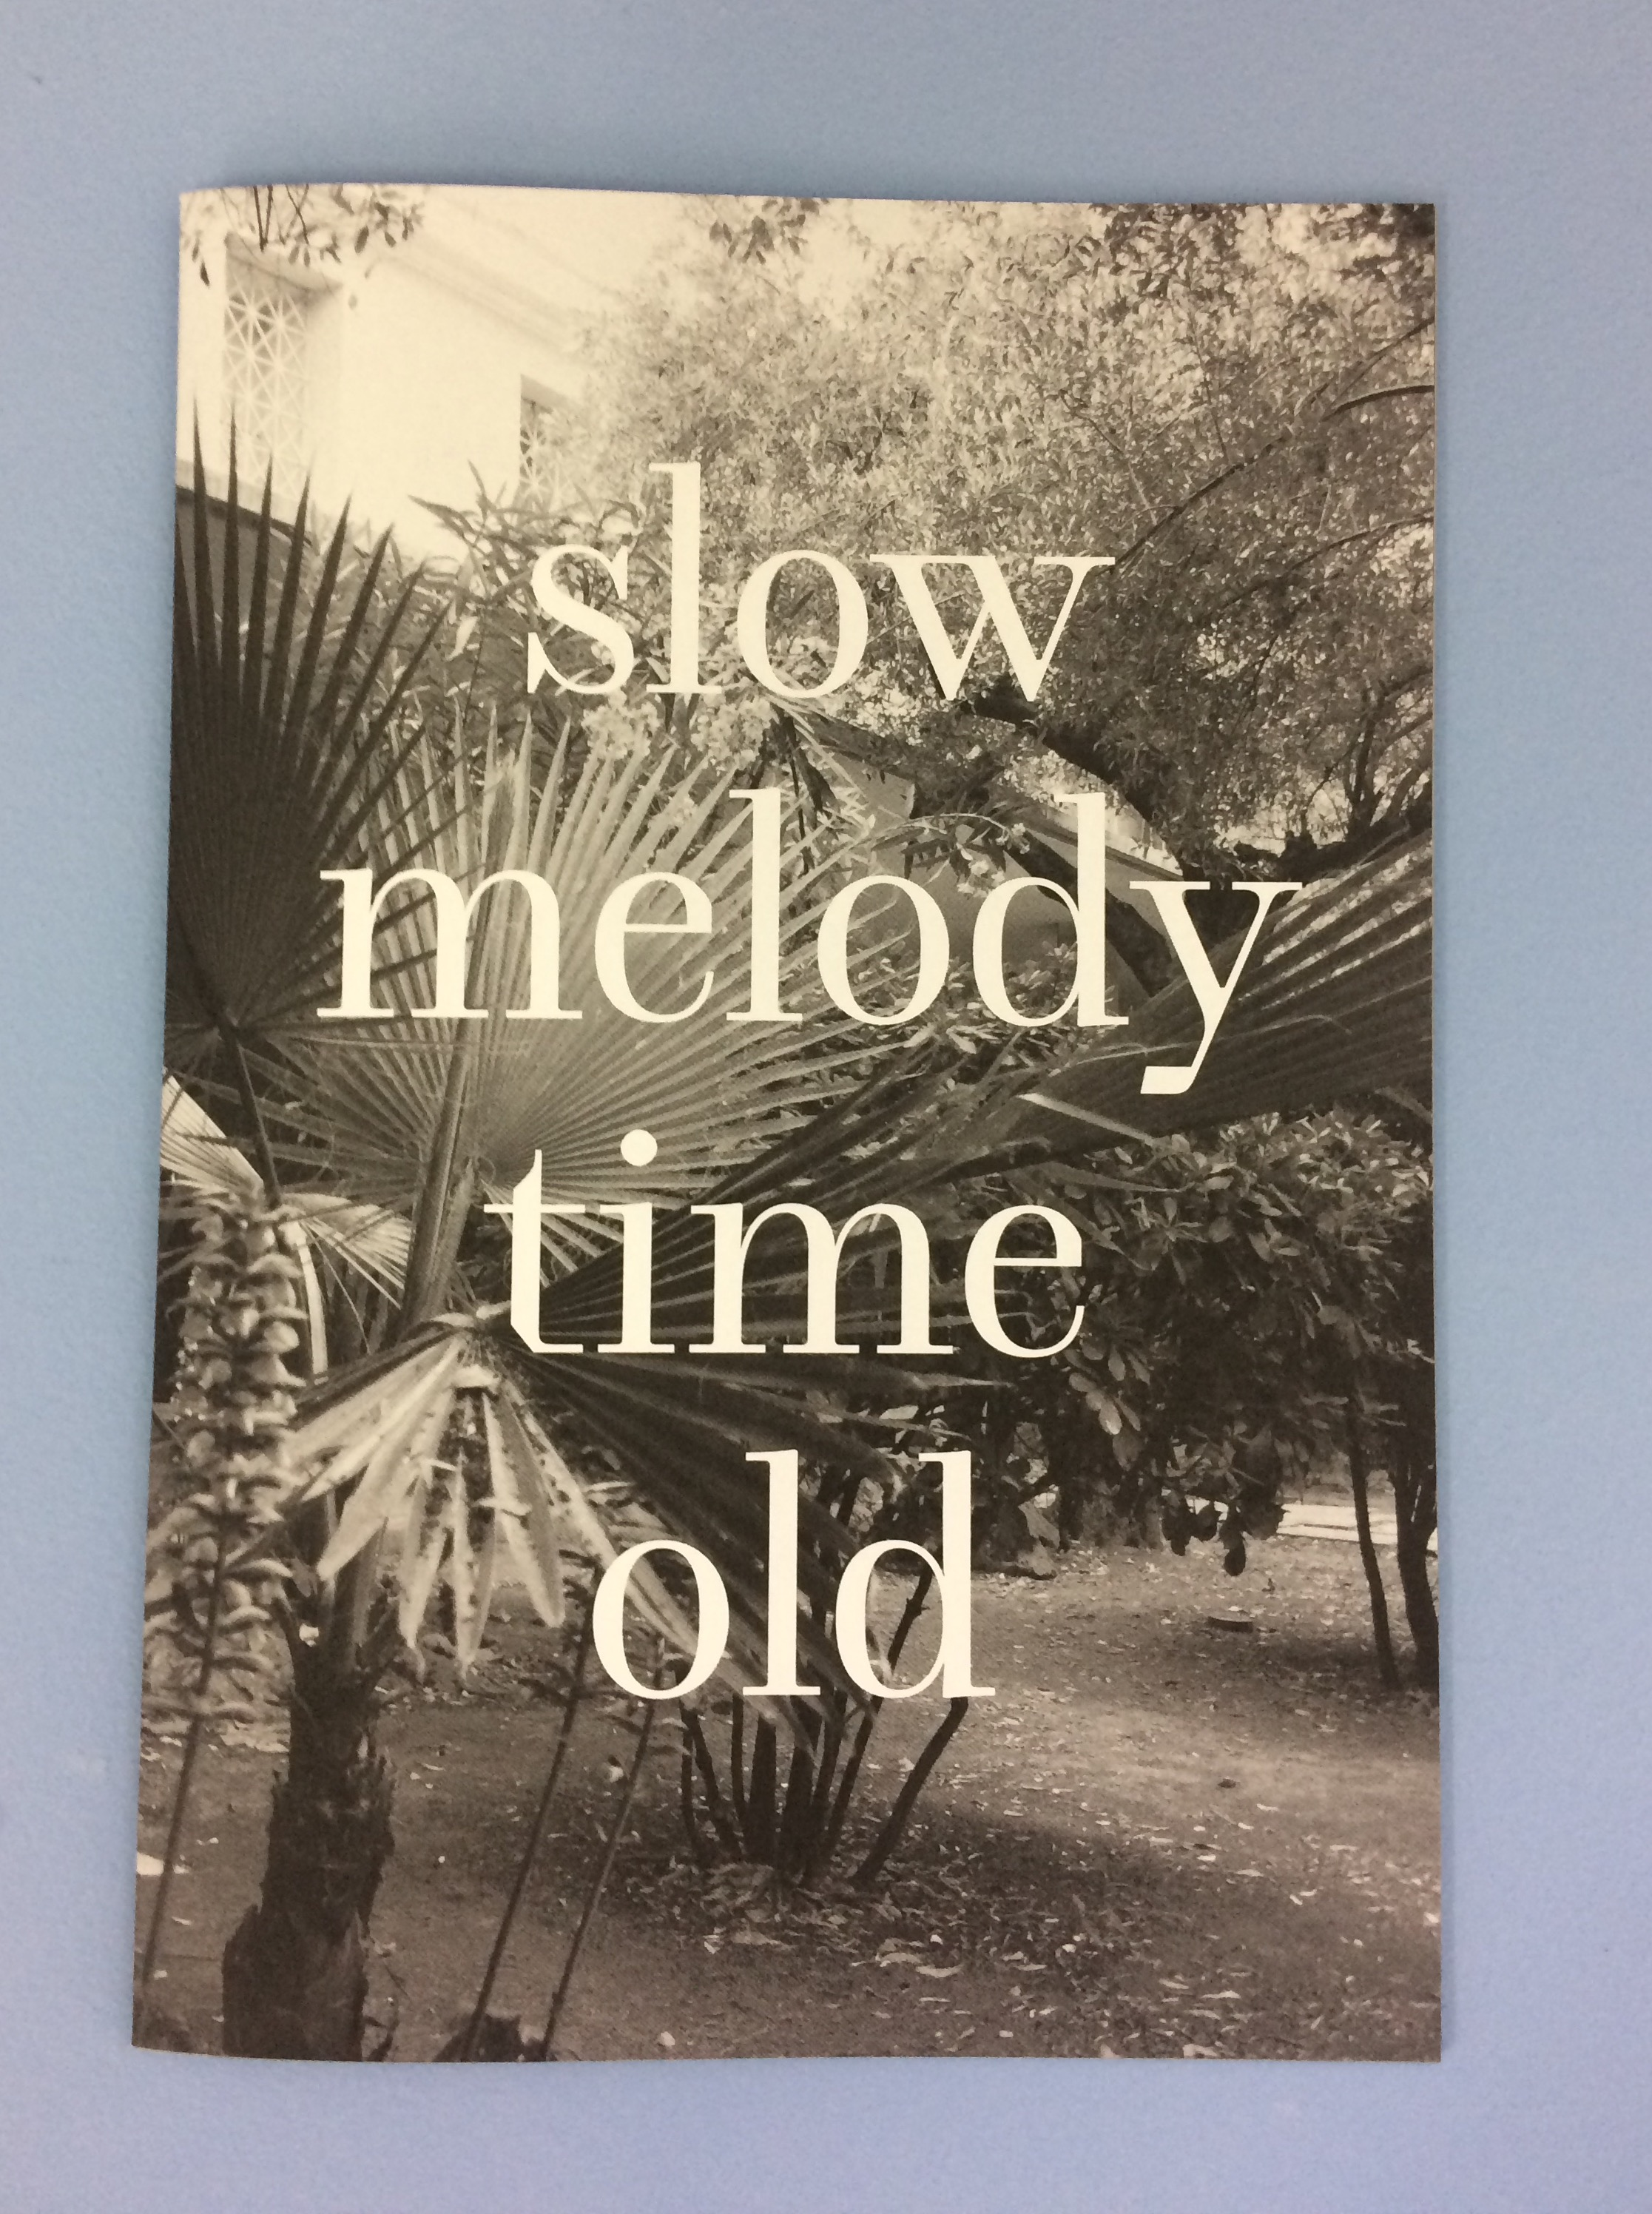 Slow Melody Time Old